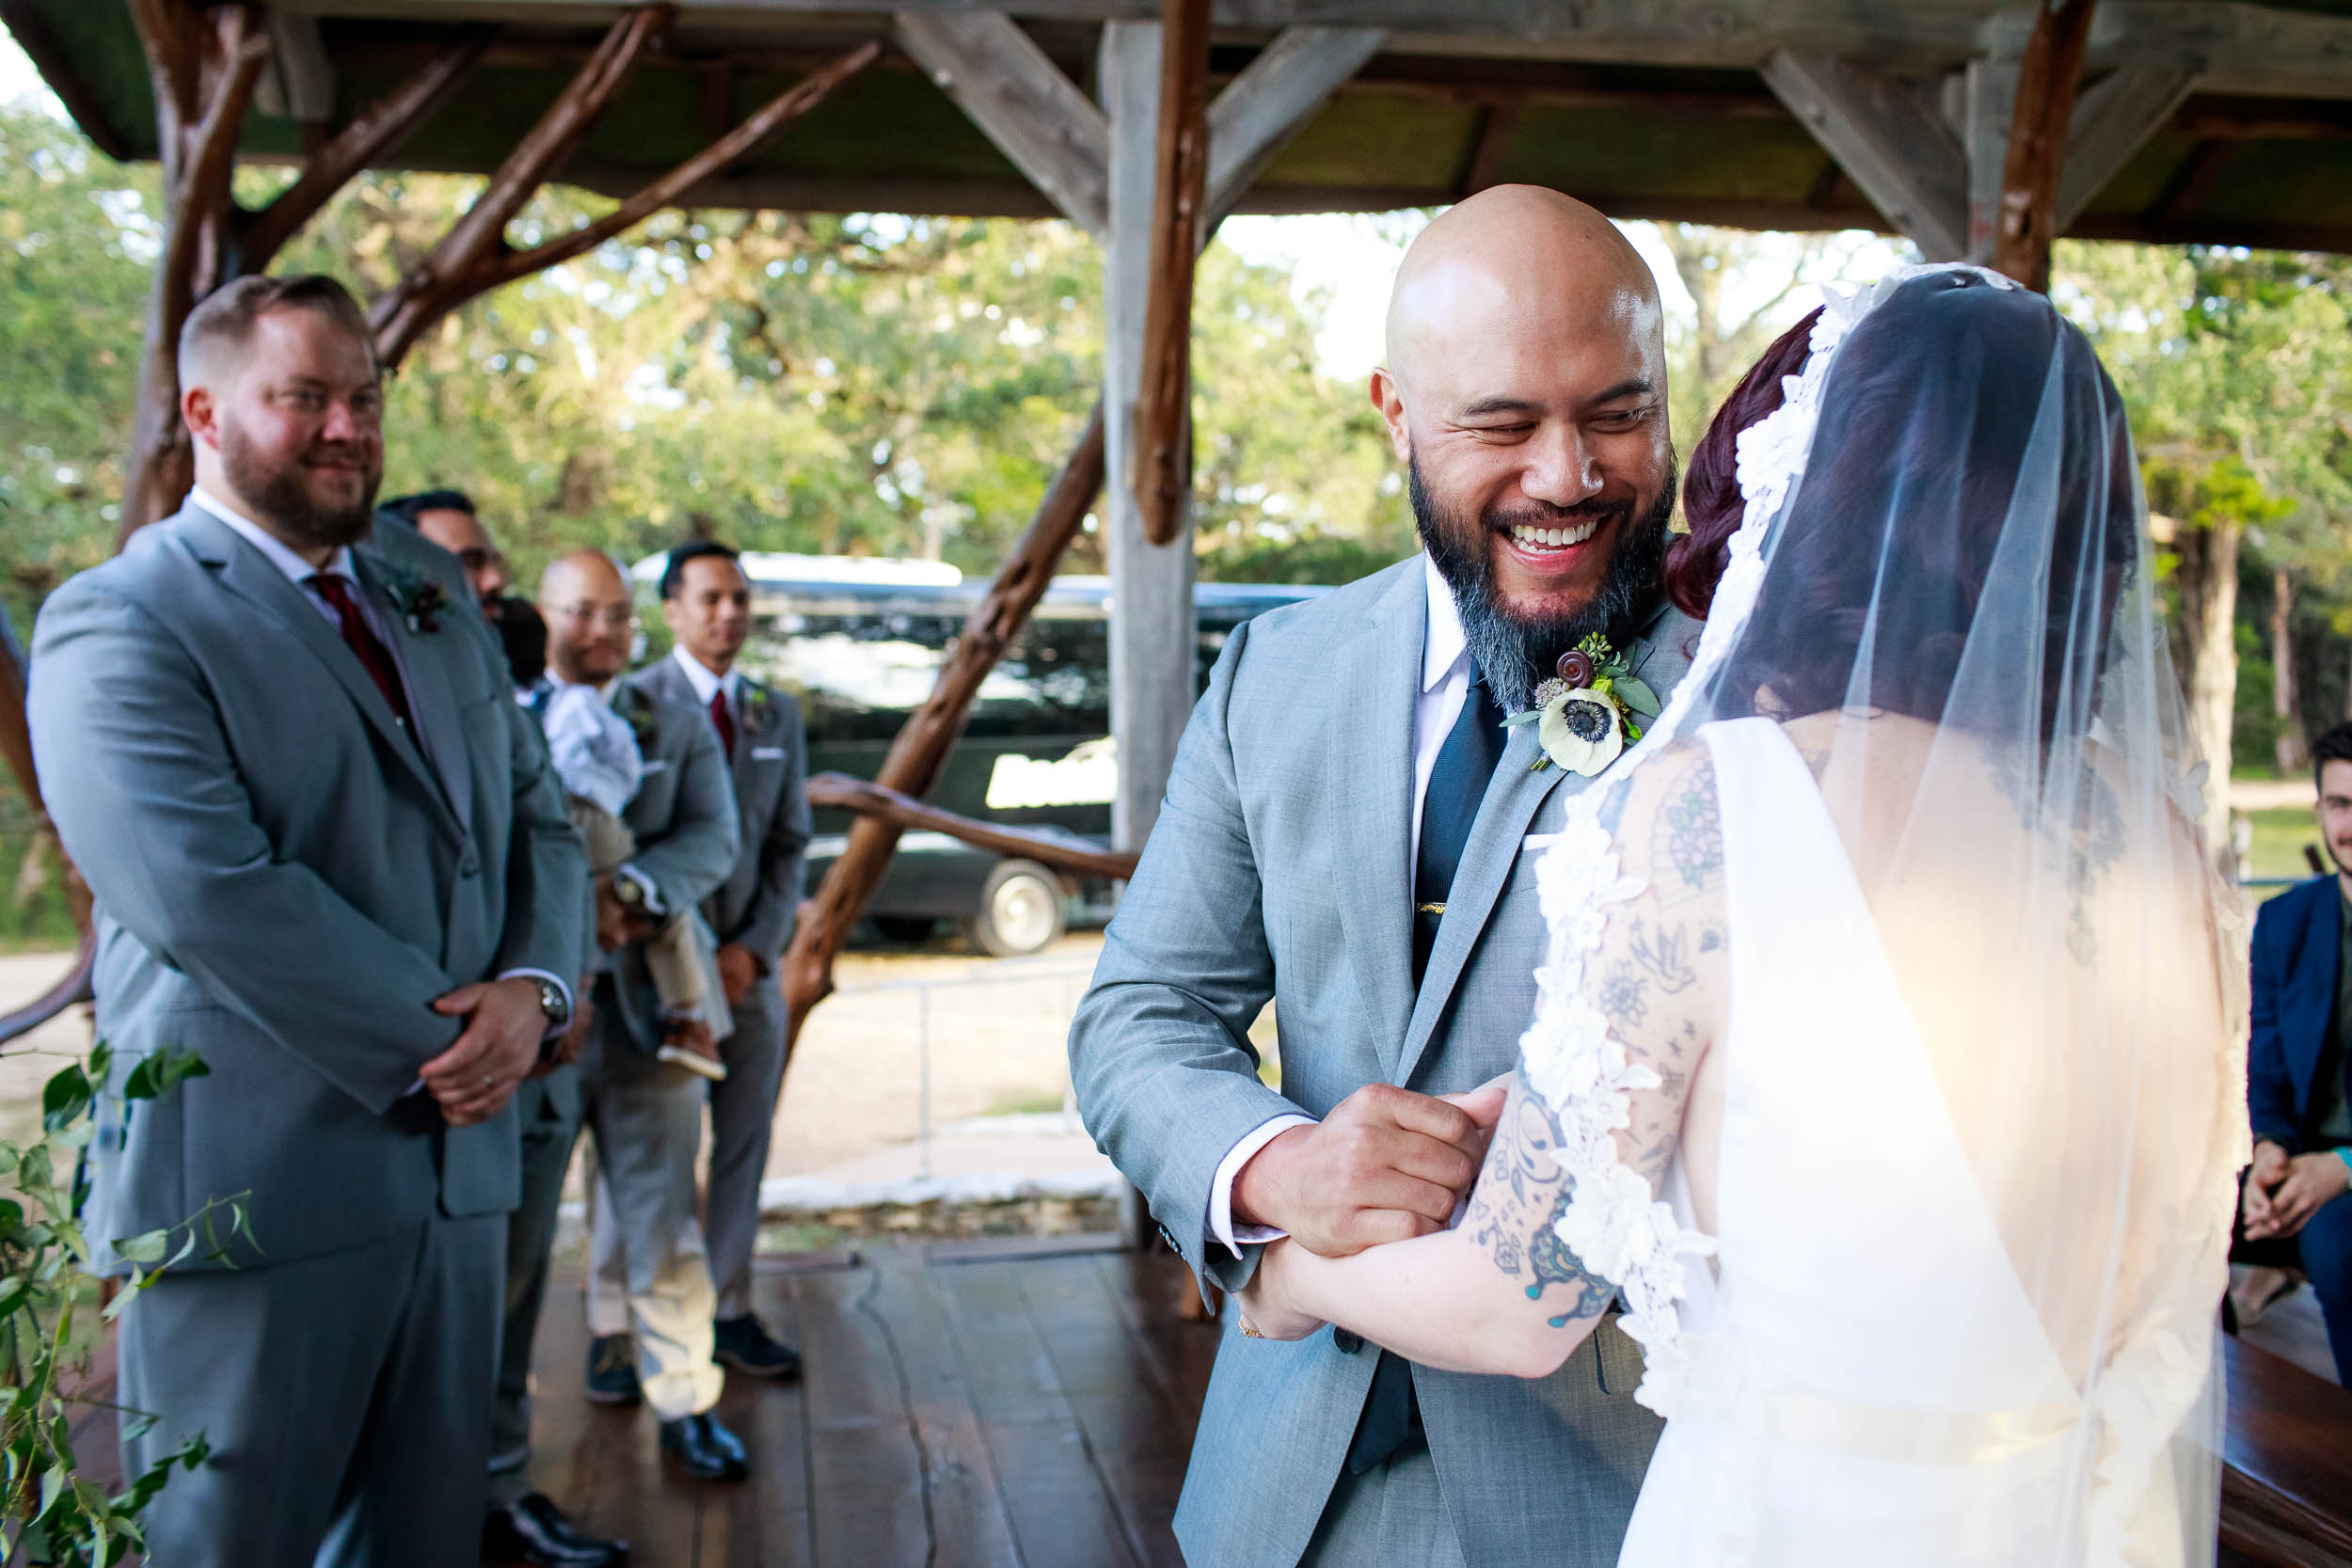 Groom excited to see his bride during a Montesino Ranch wedding Austin, Texas.